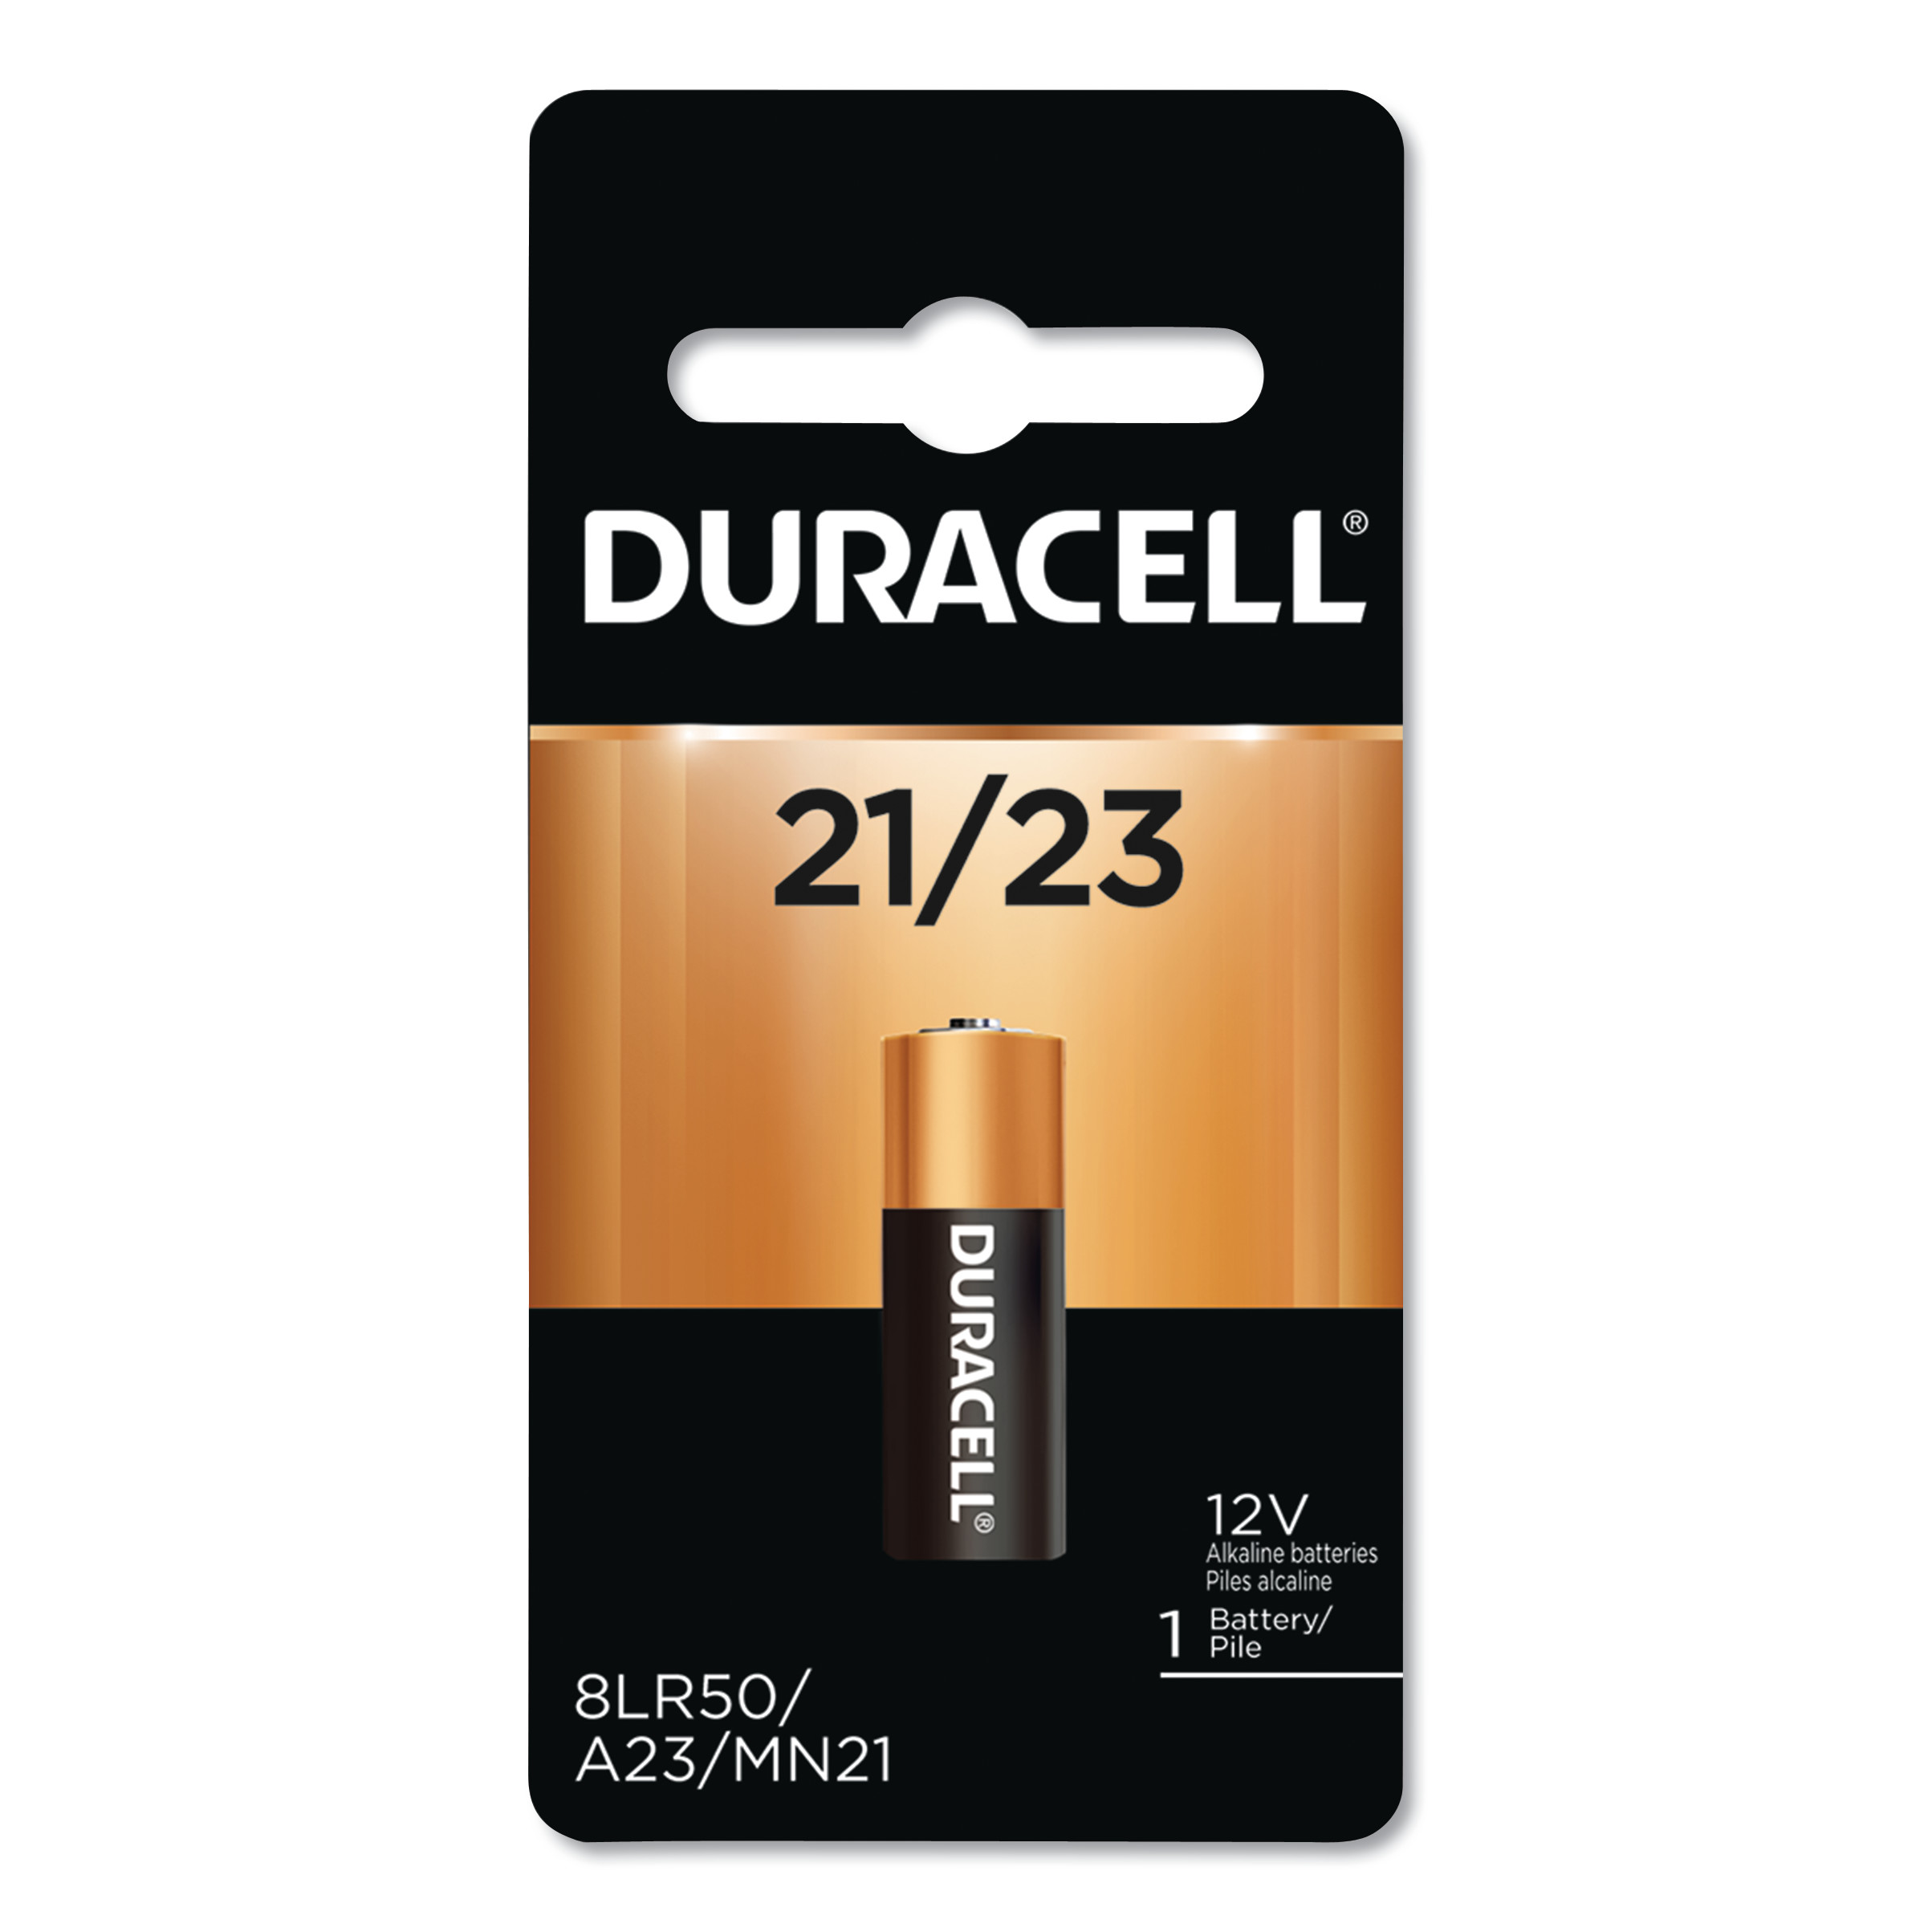 Specialty Alkaline Battery, 21/23, 12V